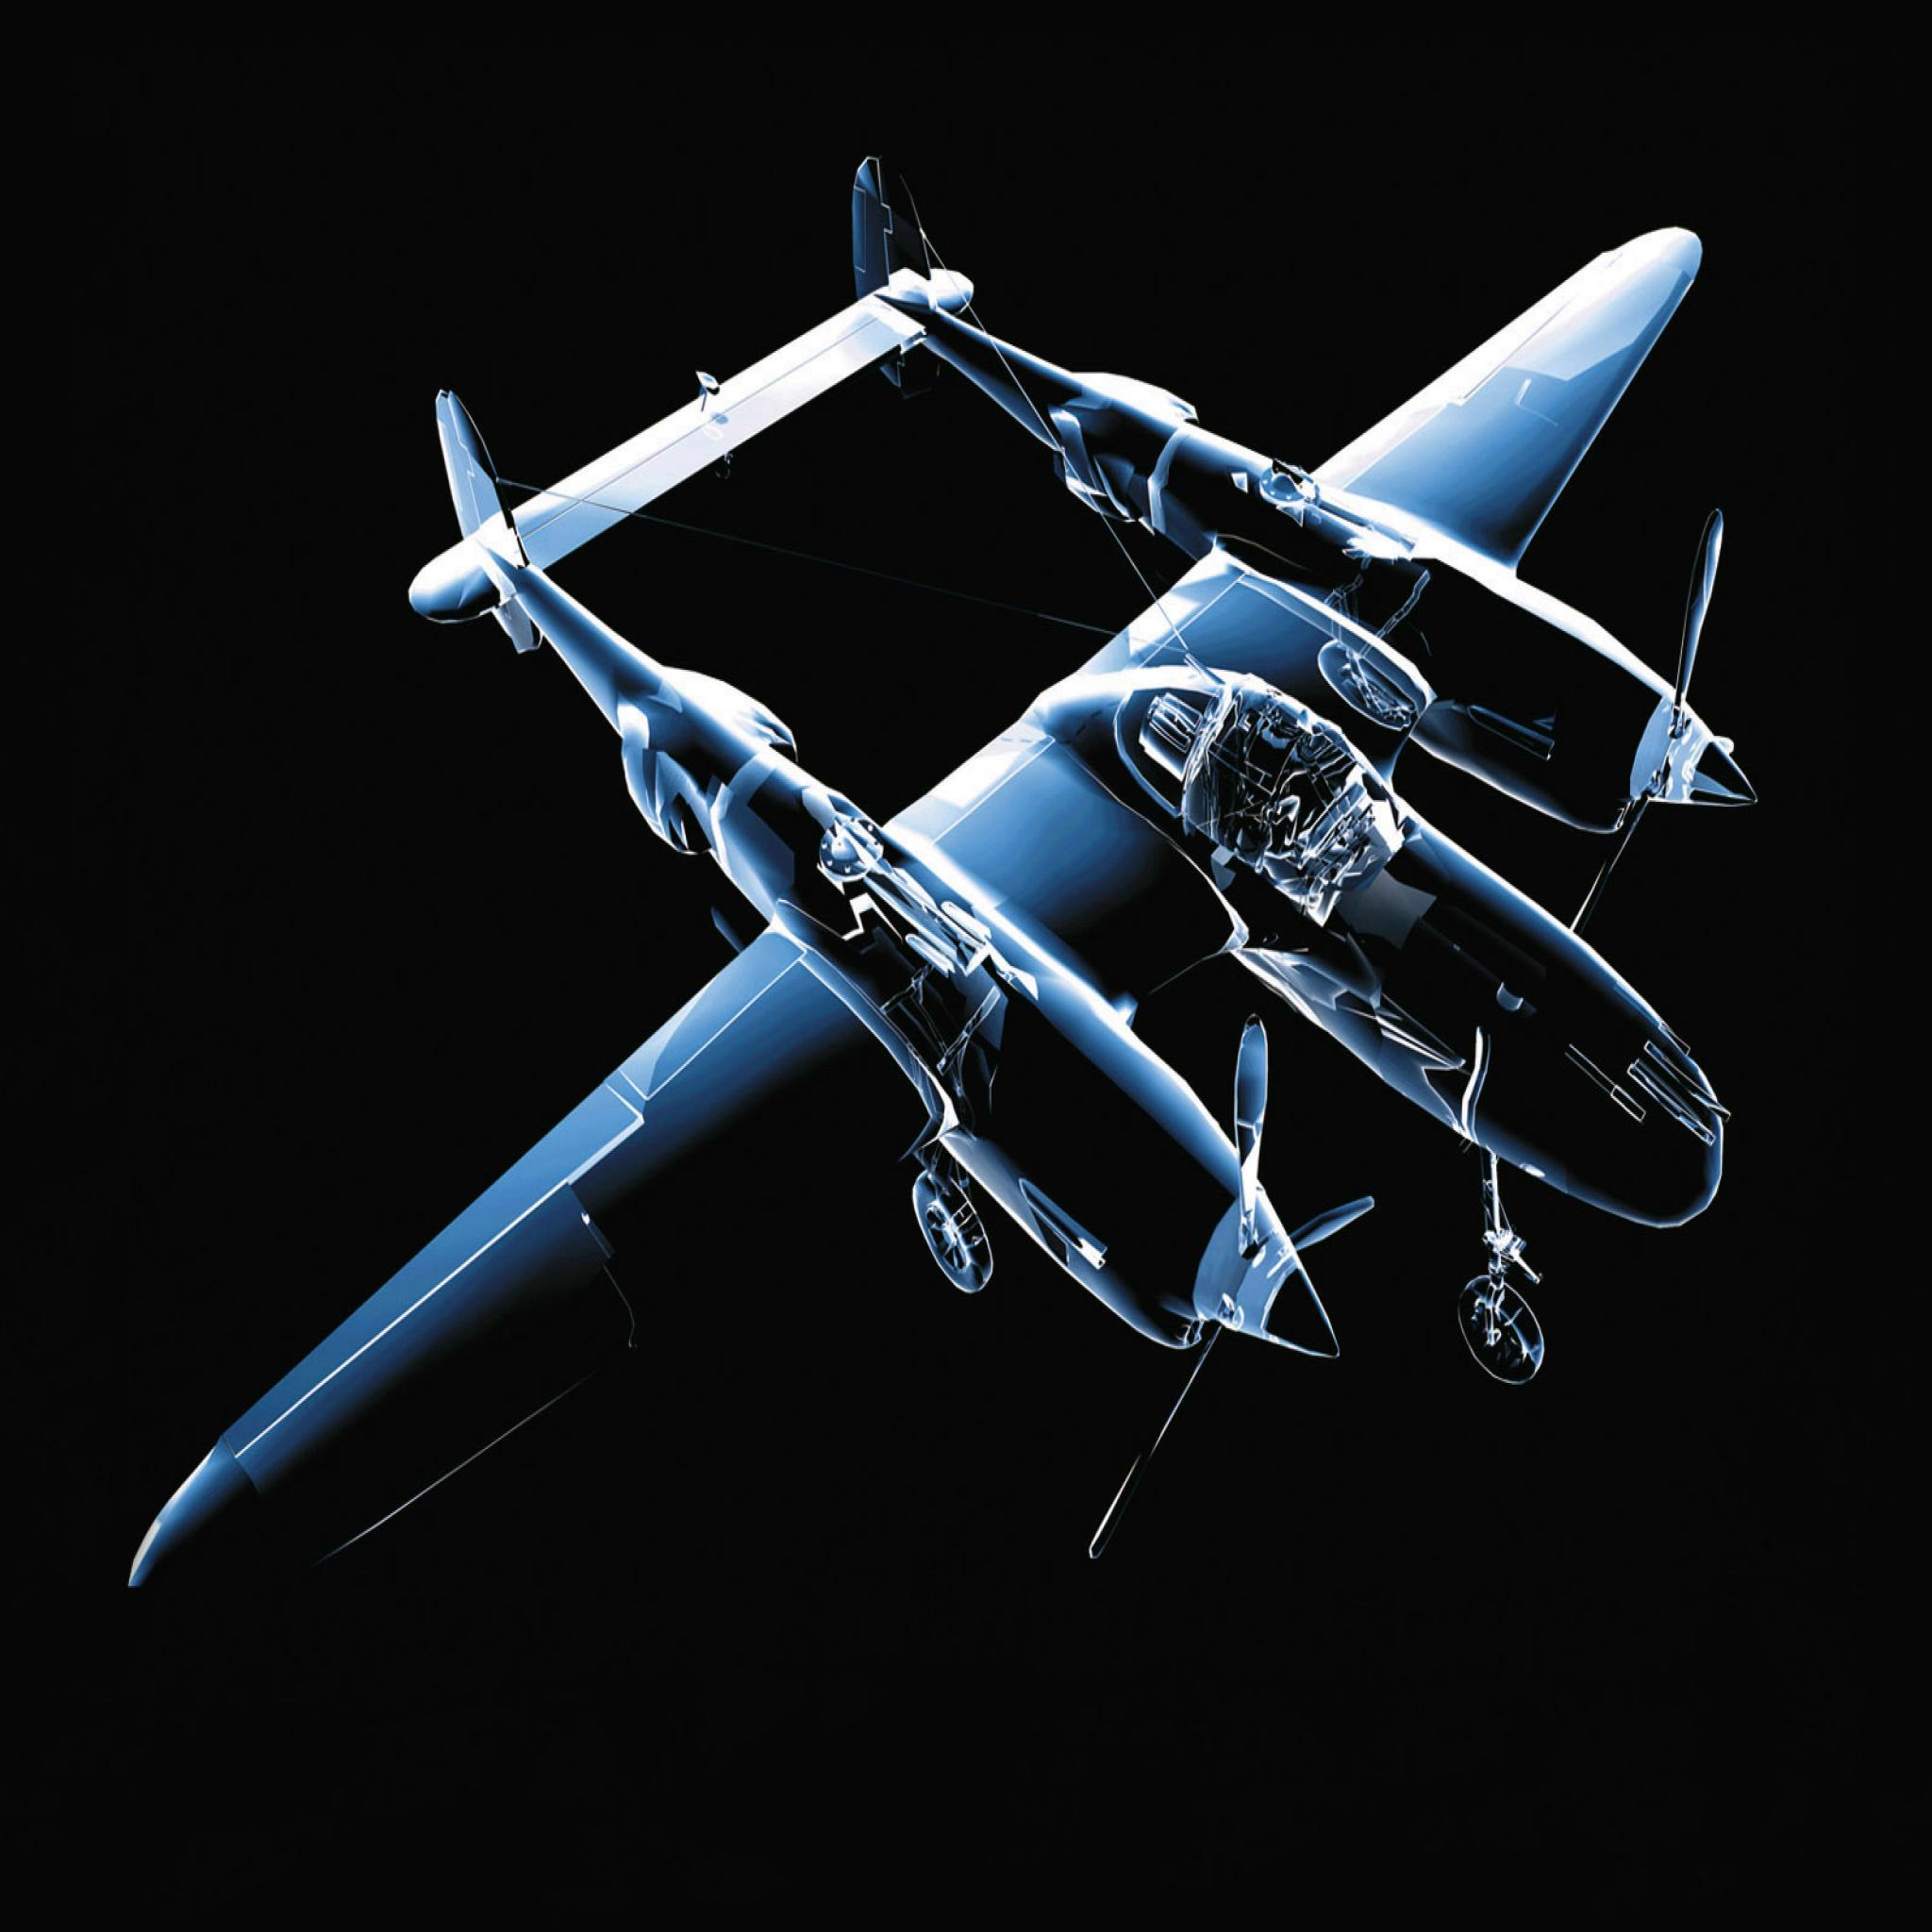 Old plane HD Wallpapers 2048x2048 Plane Wallpapers 2048x2048 Download 2048x2048